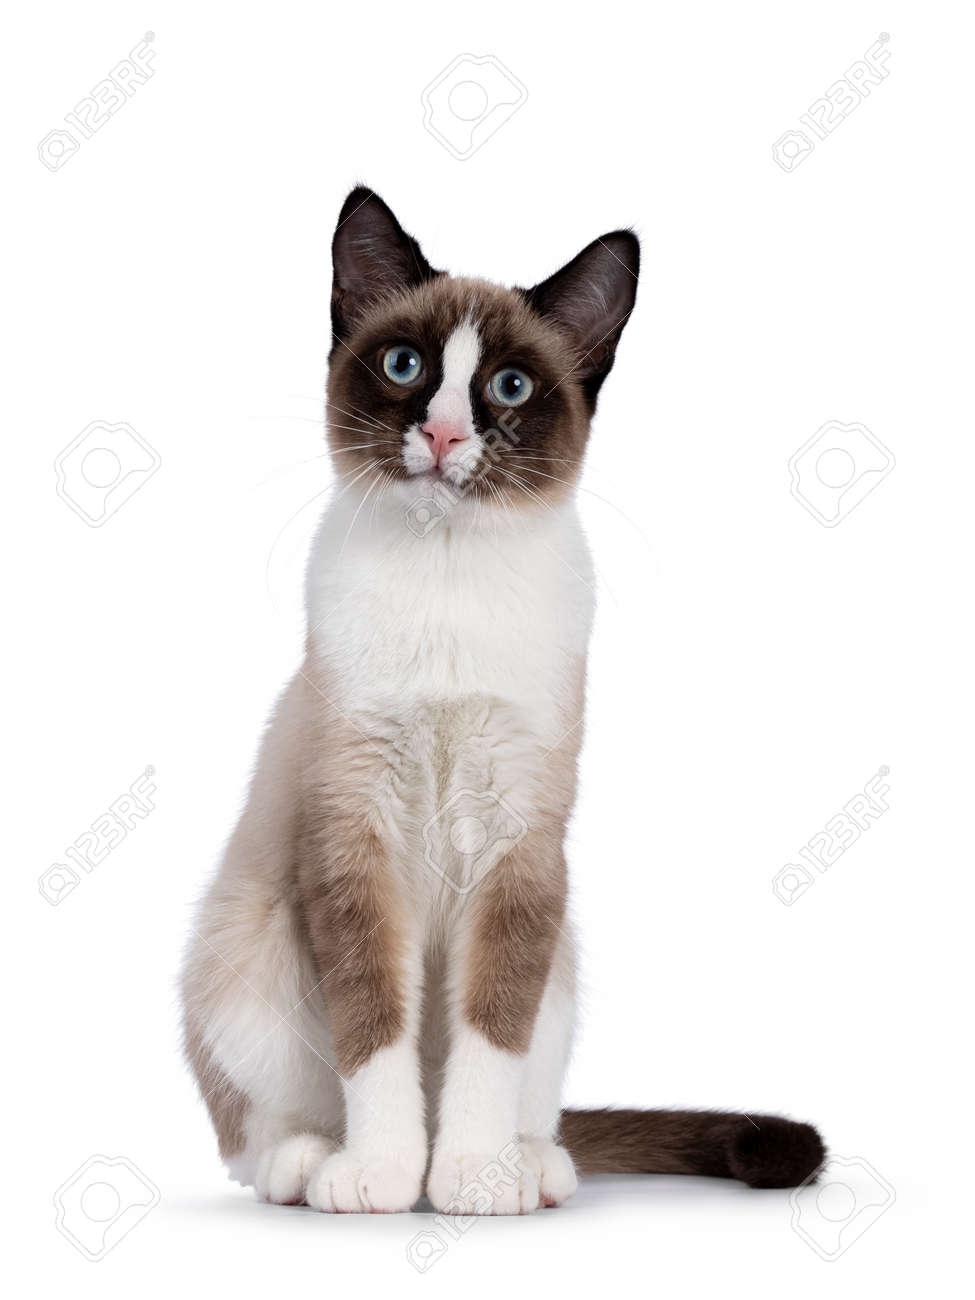 Adorable young Snowshoe cat kitten, sitting up front view. Looking towards camera with the typical blue eyes. Isolated on a white background. - 173357279